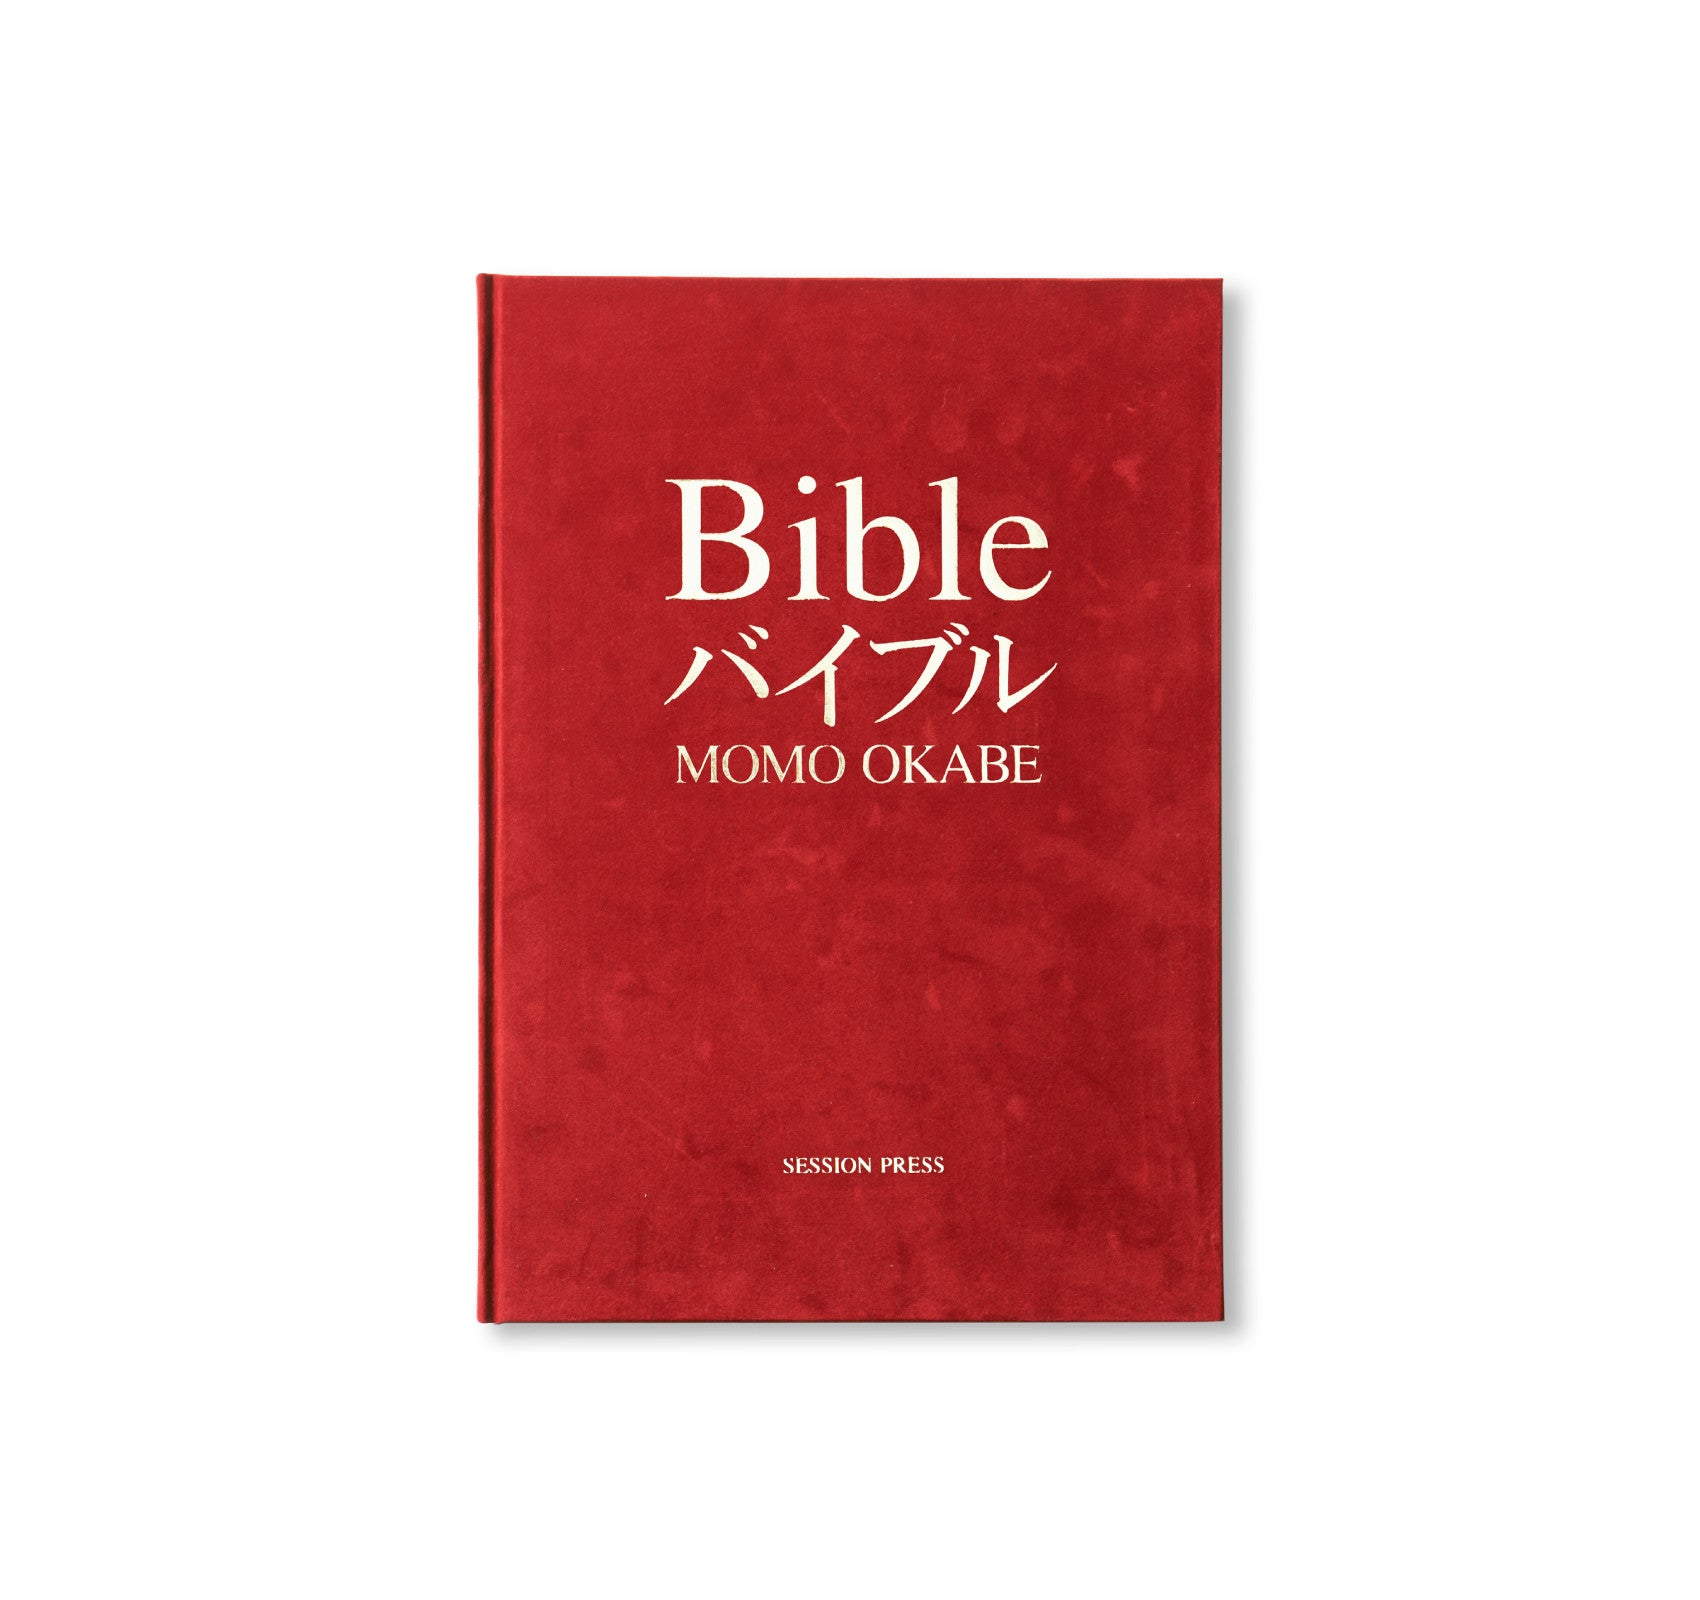 BIBLE by Momo Okabe